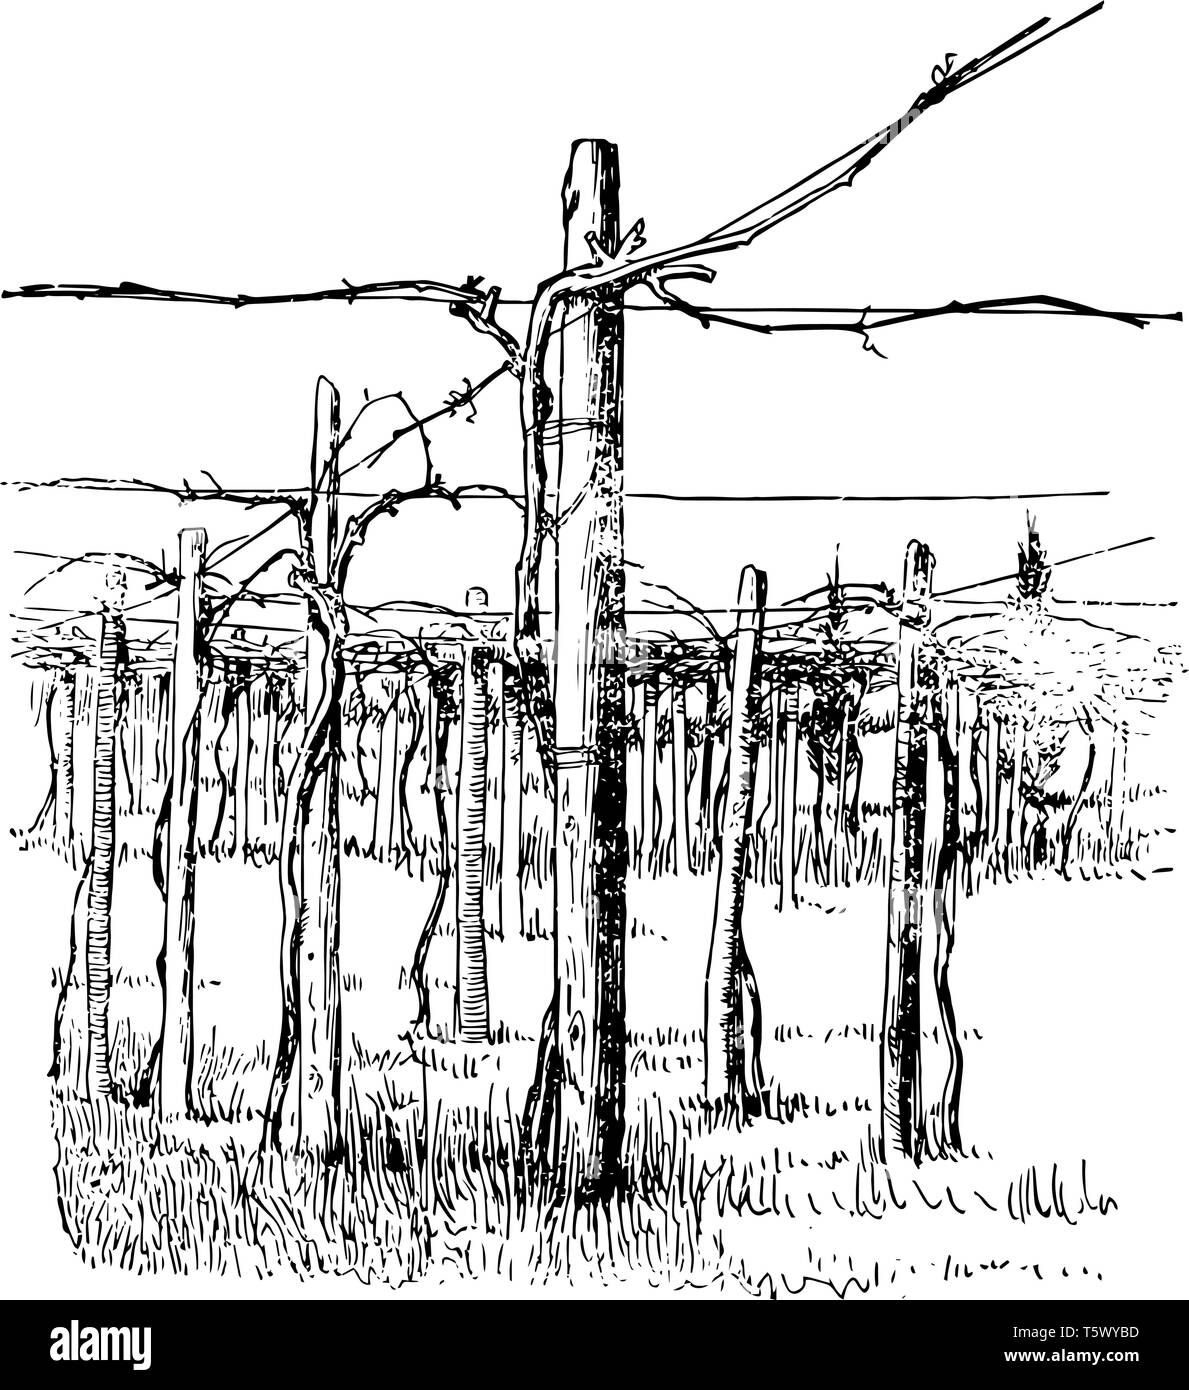 This illustration represents Cross Wire System of Grape Training which is another method of training which appears to be confined vintage line drawing - Stock Vector